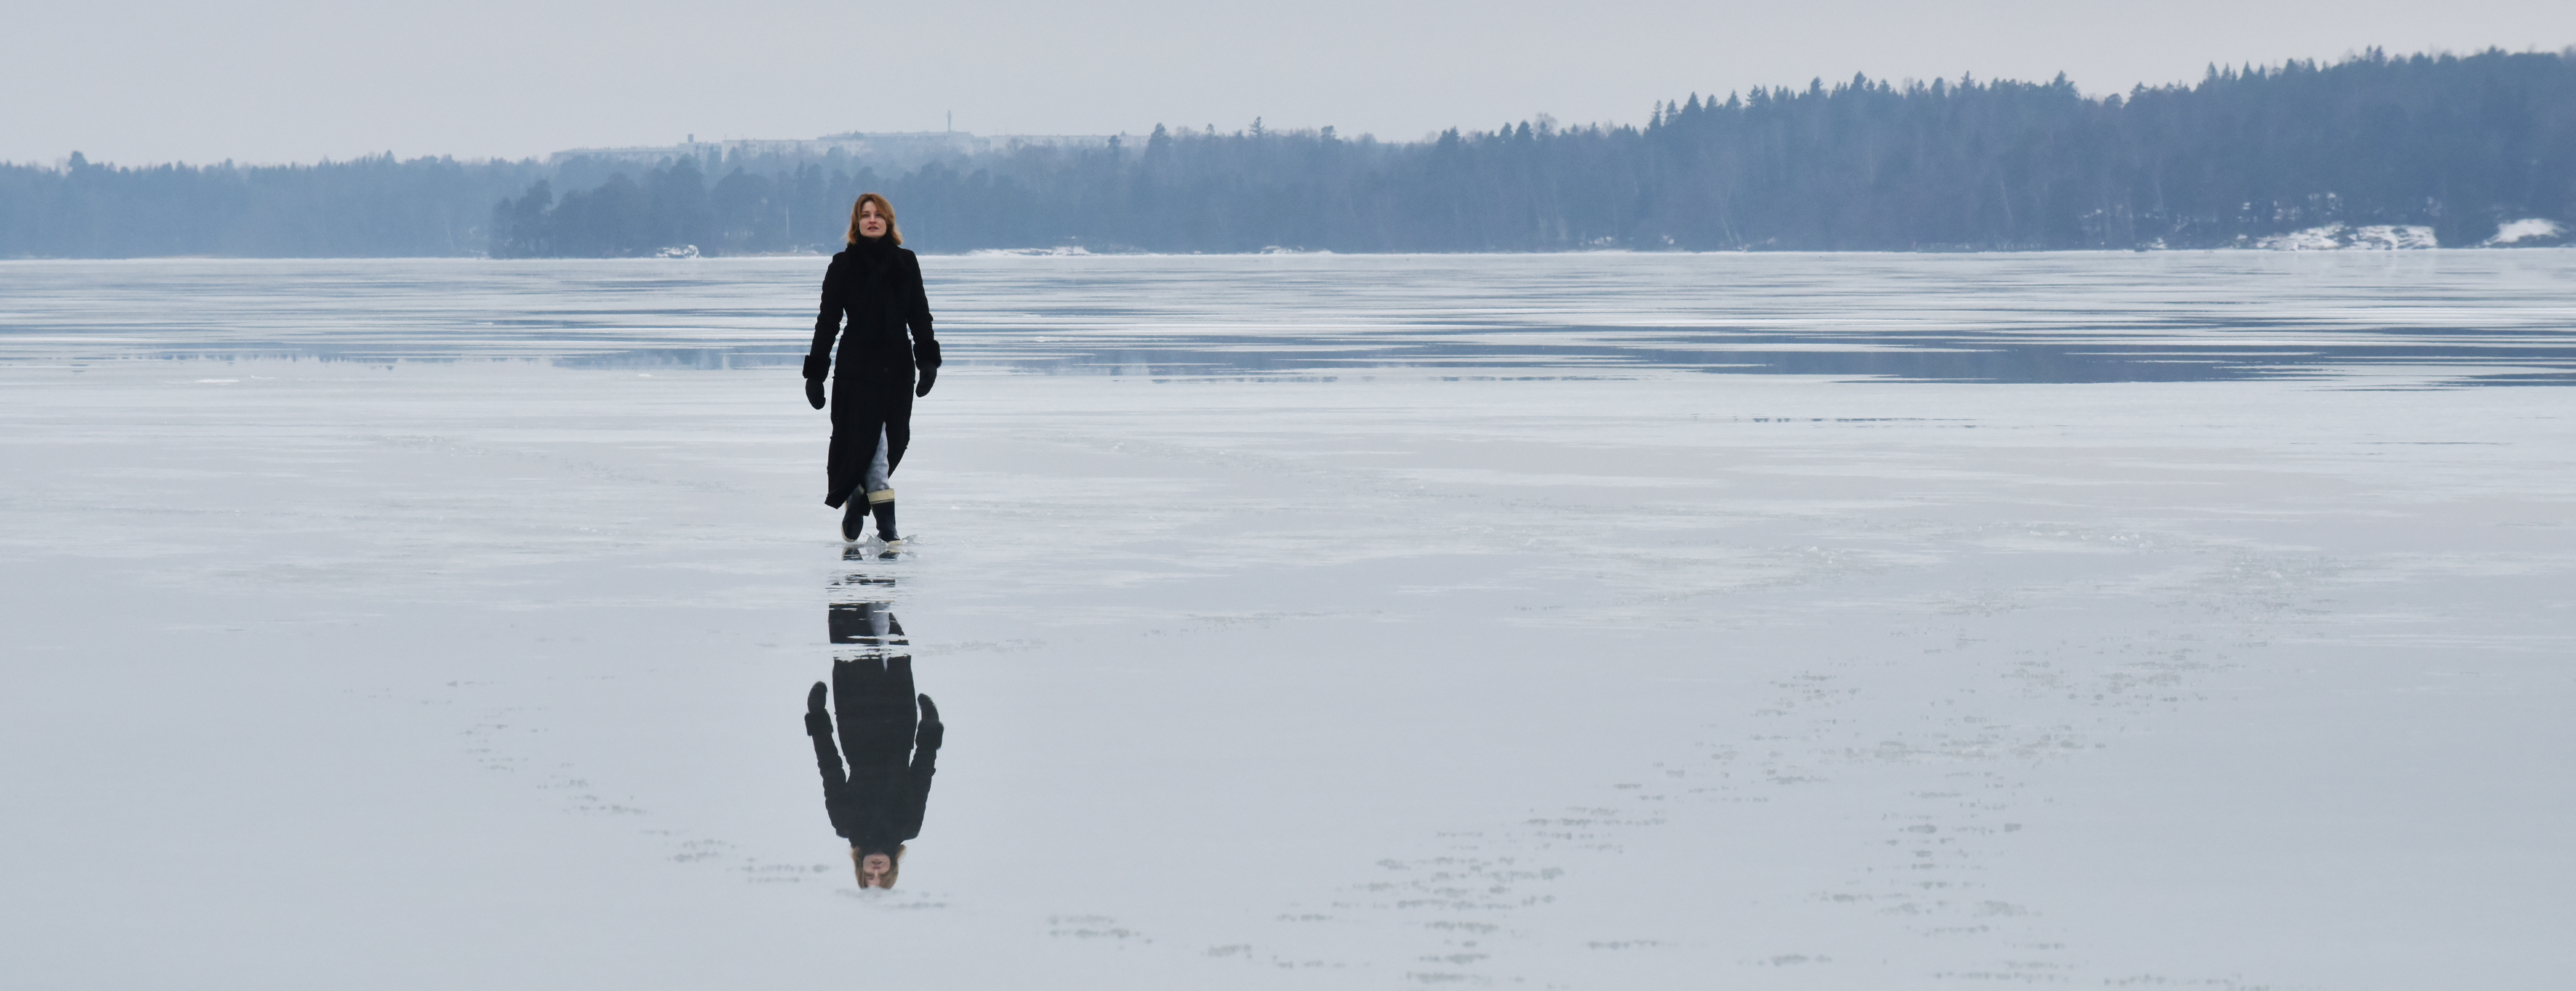 Karin-Matleena-Kuusniemi-WALKING-ON-ICE-c-Mjolk-MoviesMalla-Hukkanen